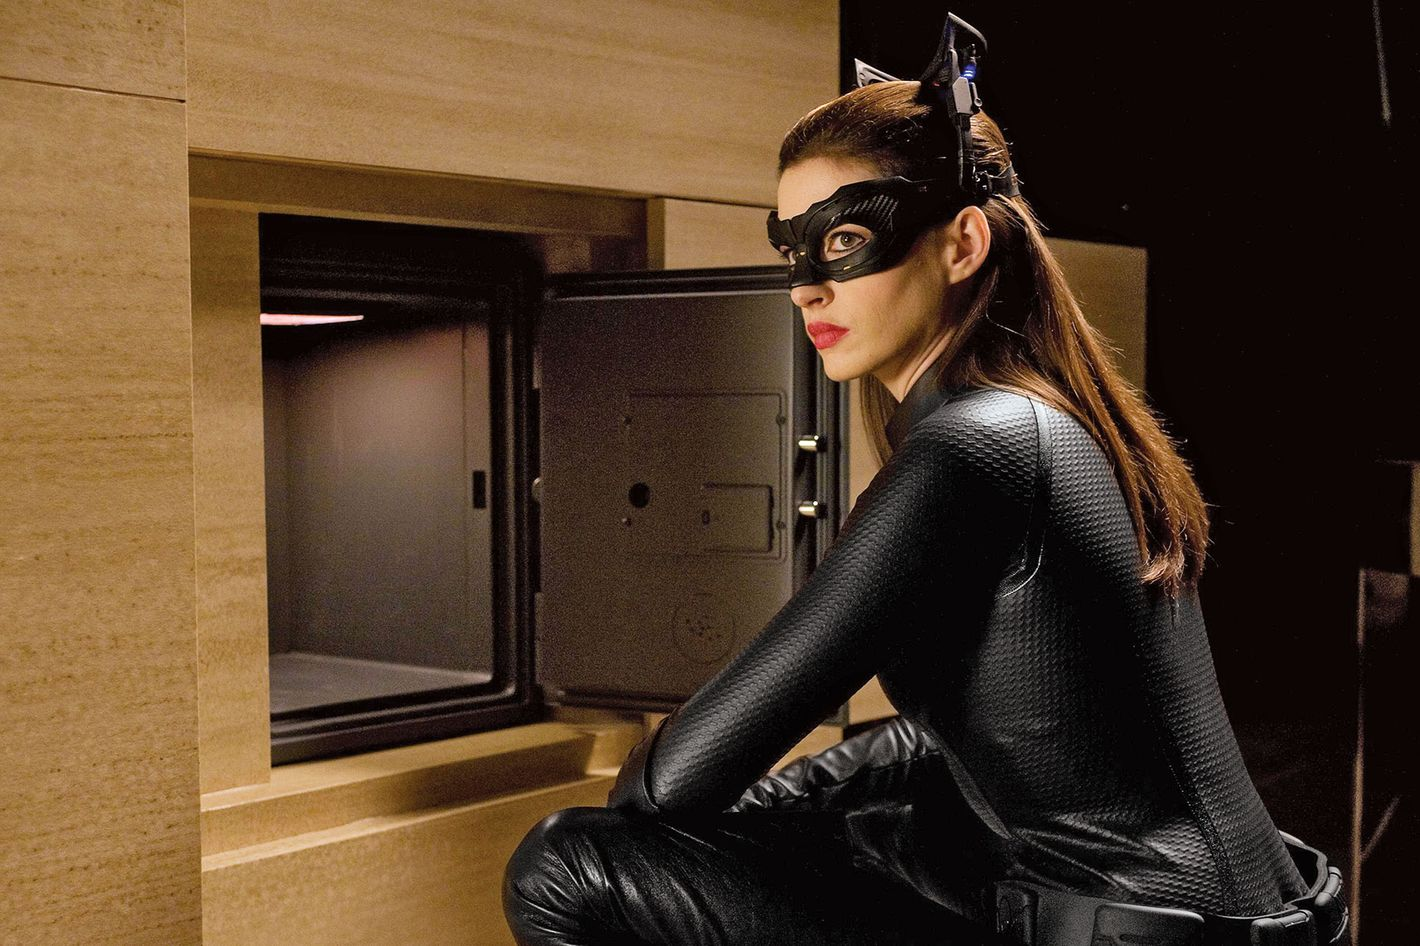 catwoman dating